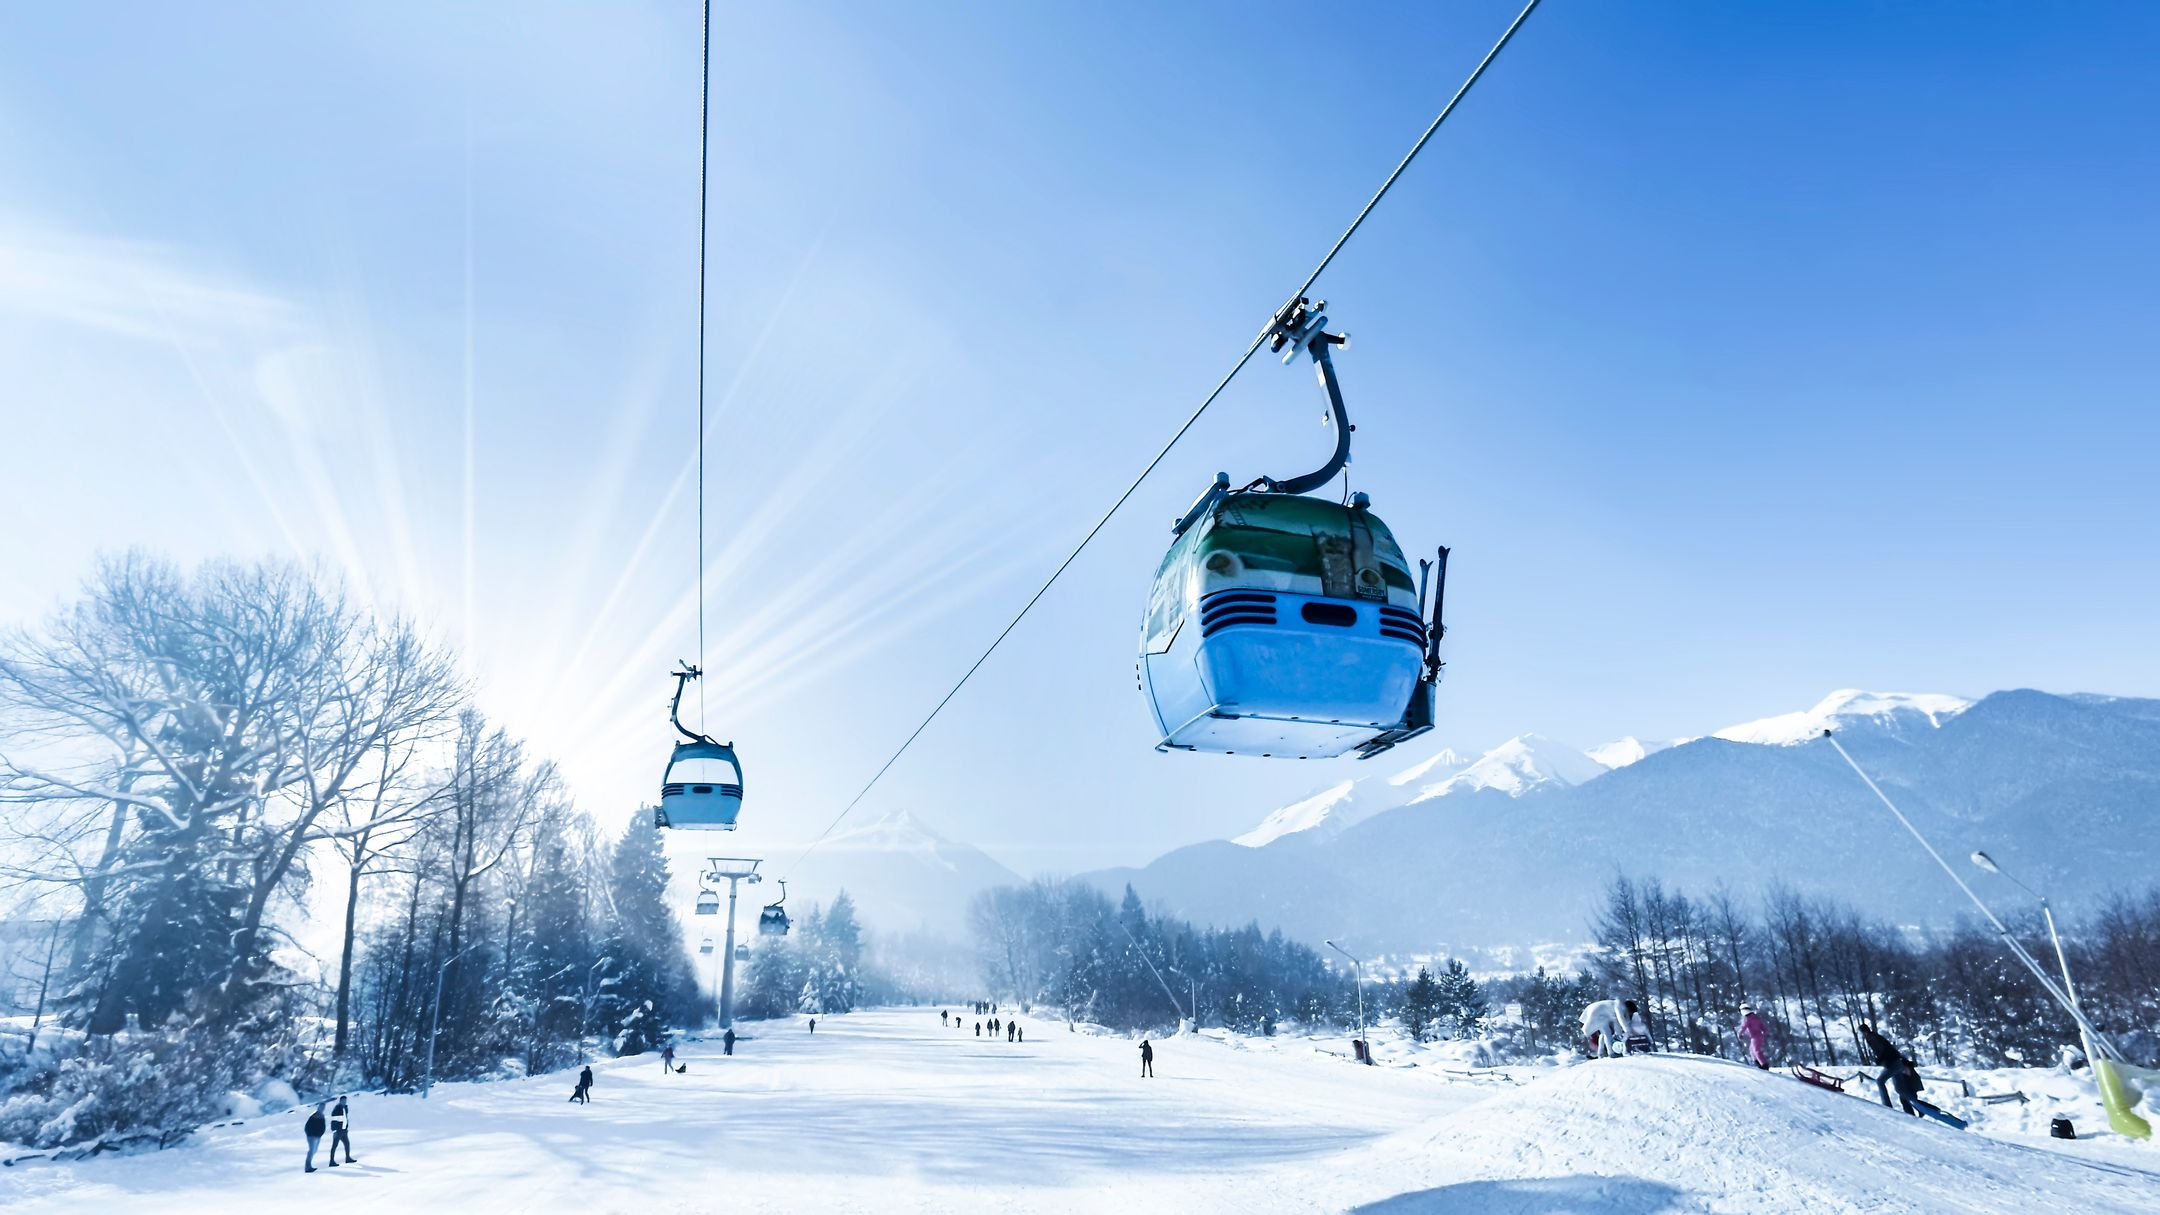 Skiing Bulgaria ski resort Bansko ripatrip travel big